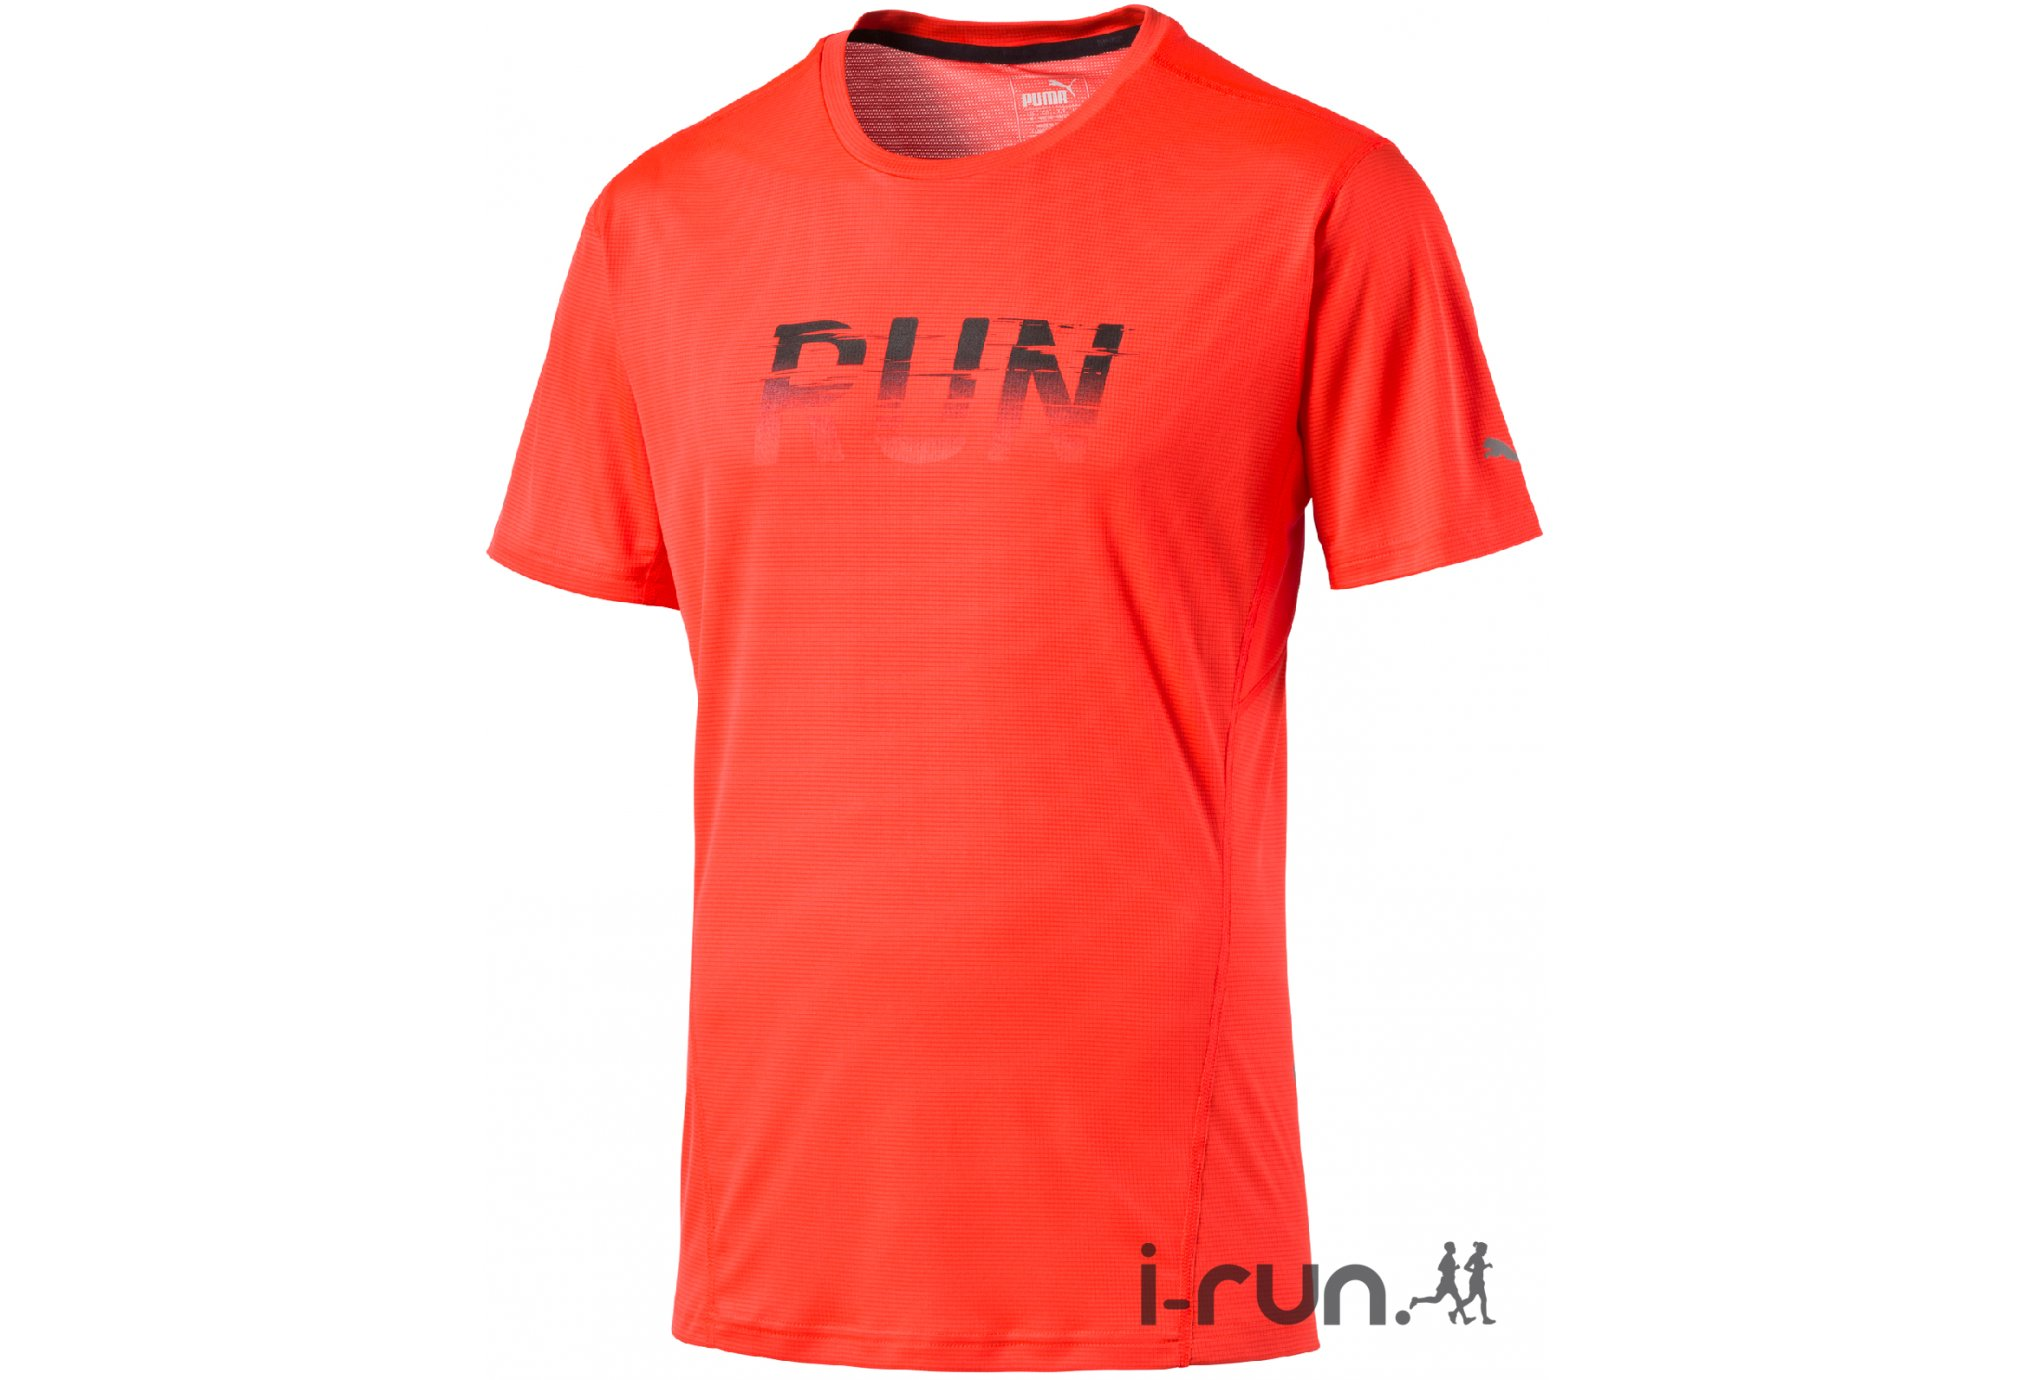 Puma Tee-shirt Running M vêtement running homme